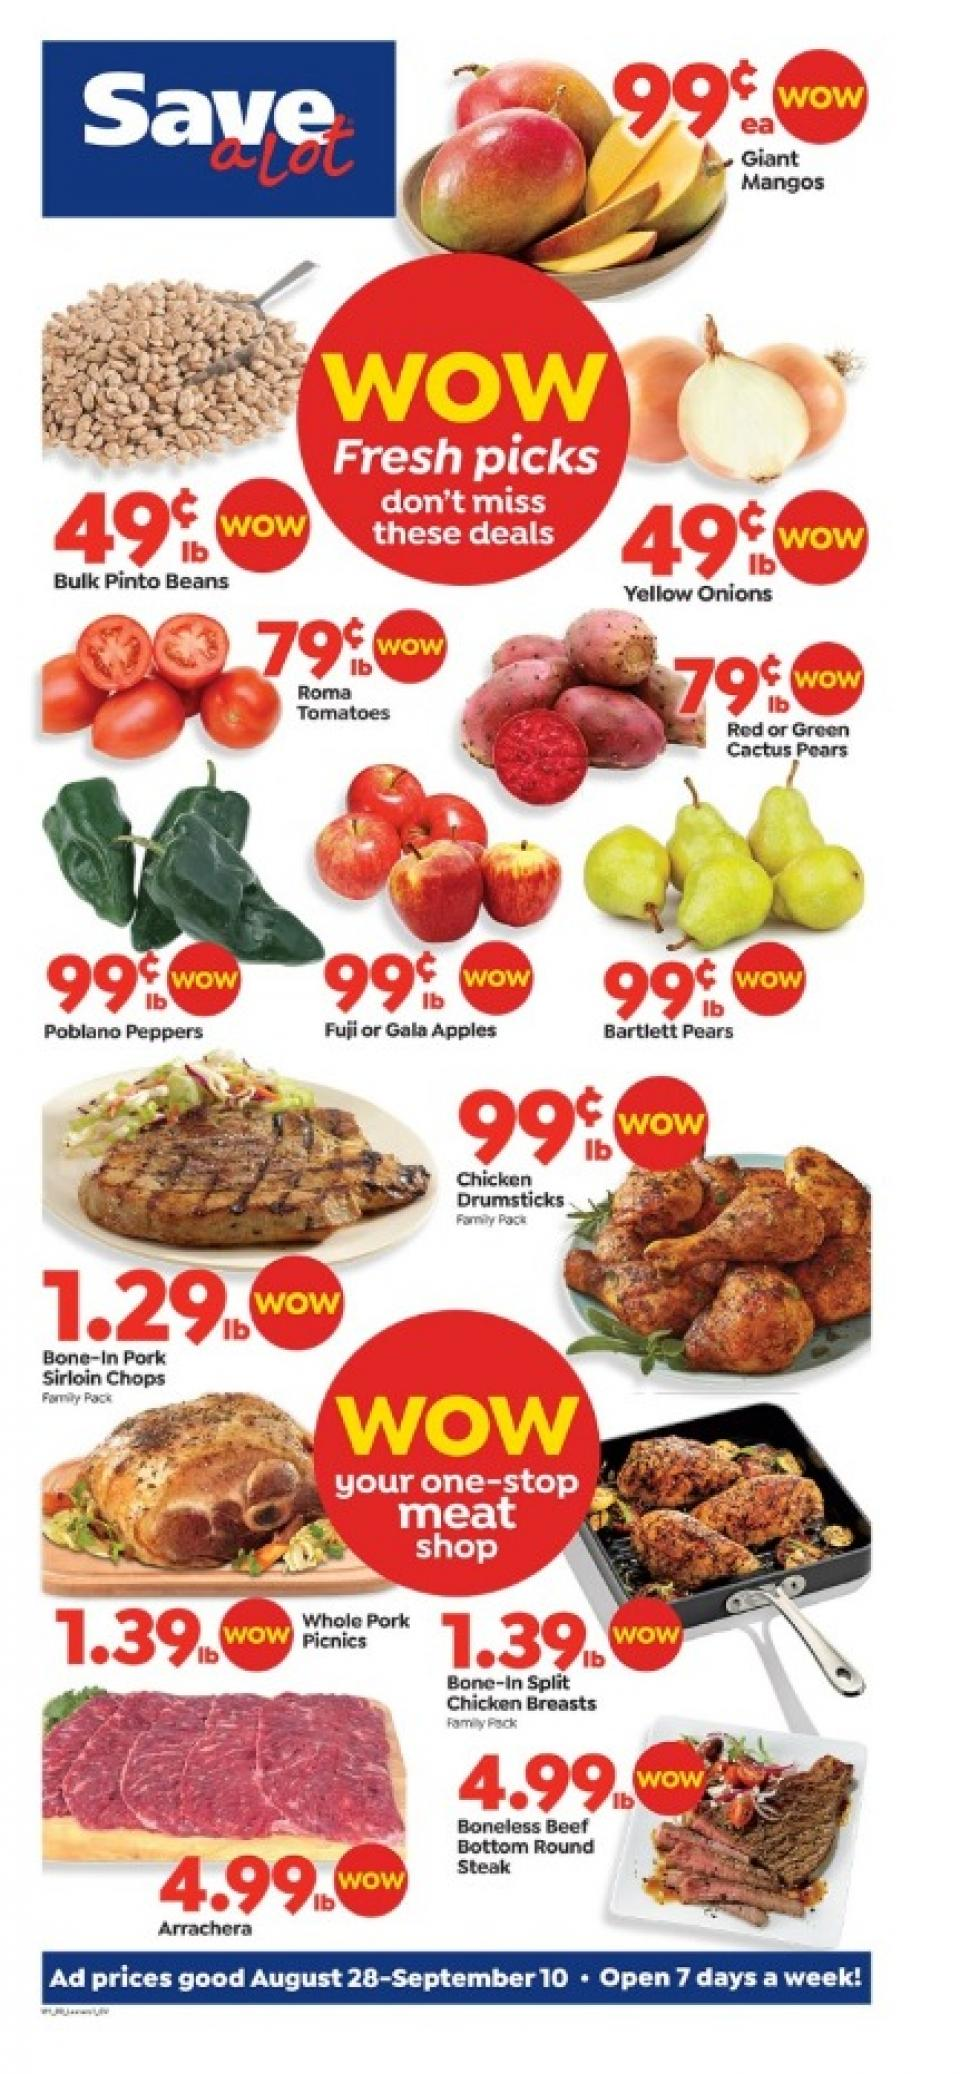 save money with new save a lot weekly ad aug 28 sep 10 2019